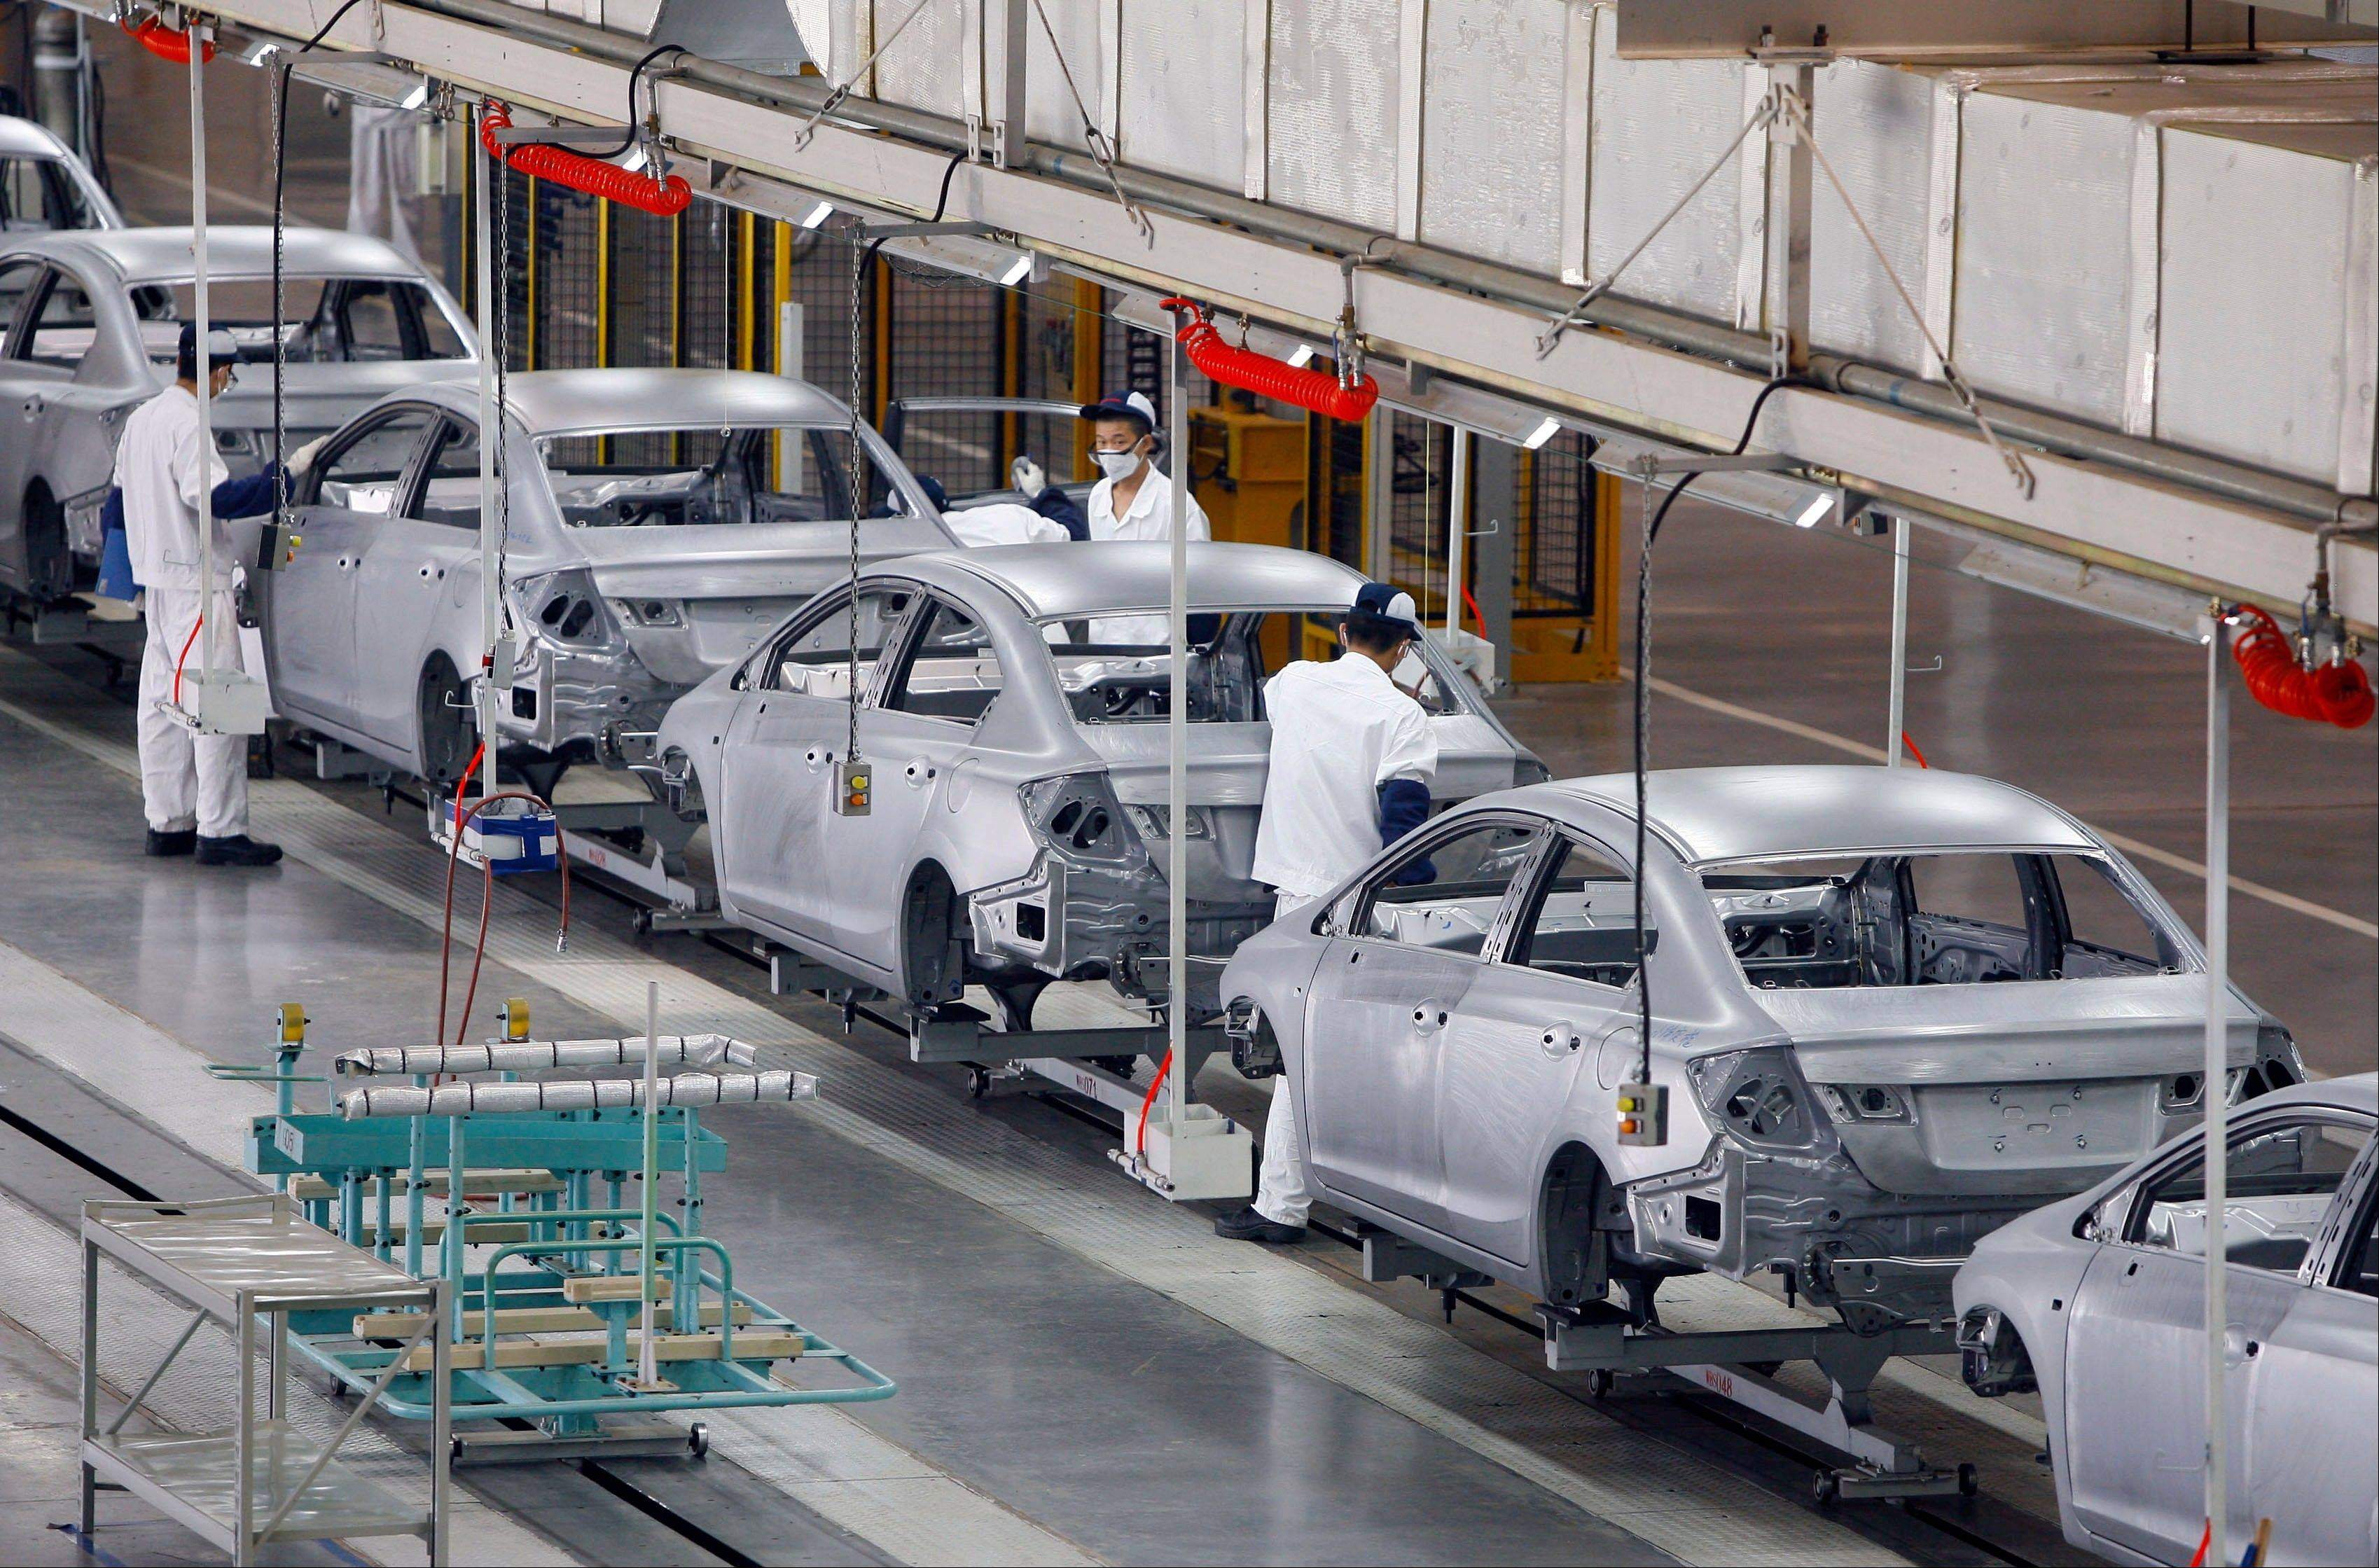 China's vehicle sales grew by an unexpectedly strong 8.3 percent in August despite the countryís economic slowdown. Data released Monday, Sept. 10 by an industry group showed customers bought 1.5 million passenger cars and other vehicles. The growth rate was up slightly from the previous month.